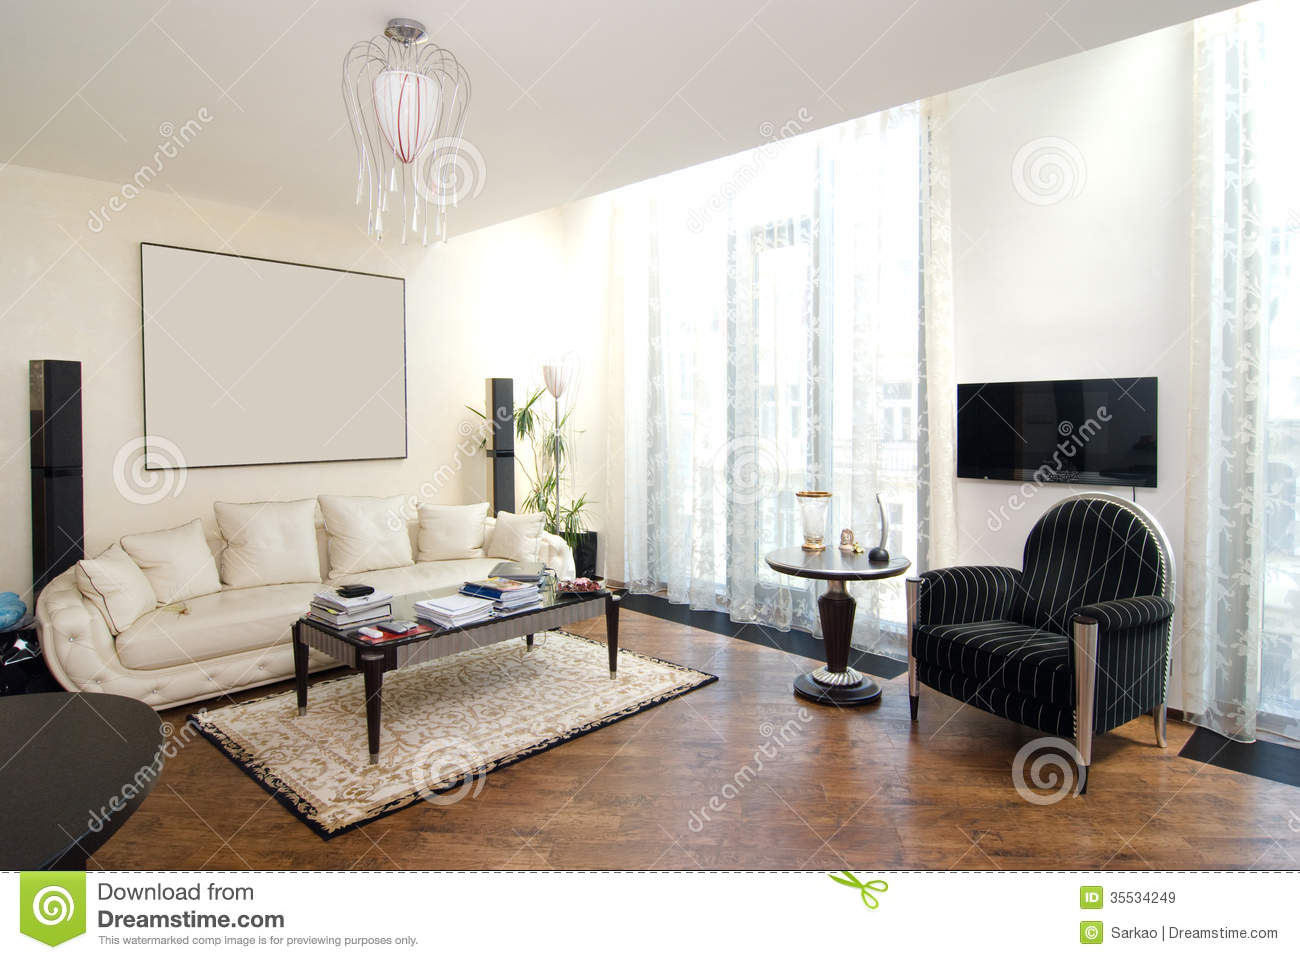 Luxury modern living room royalty free stock images for Salon moderne de luxe